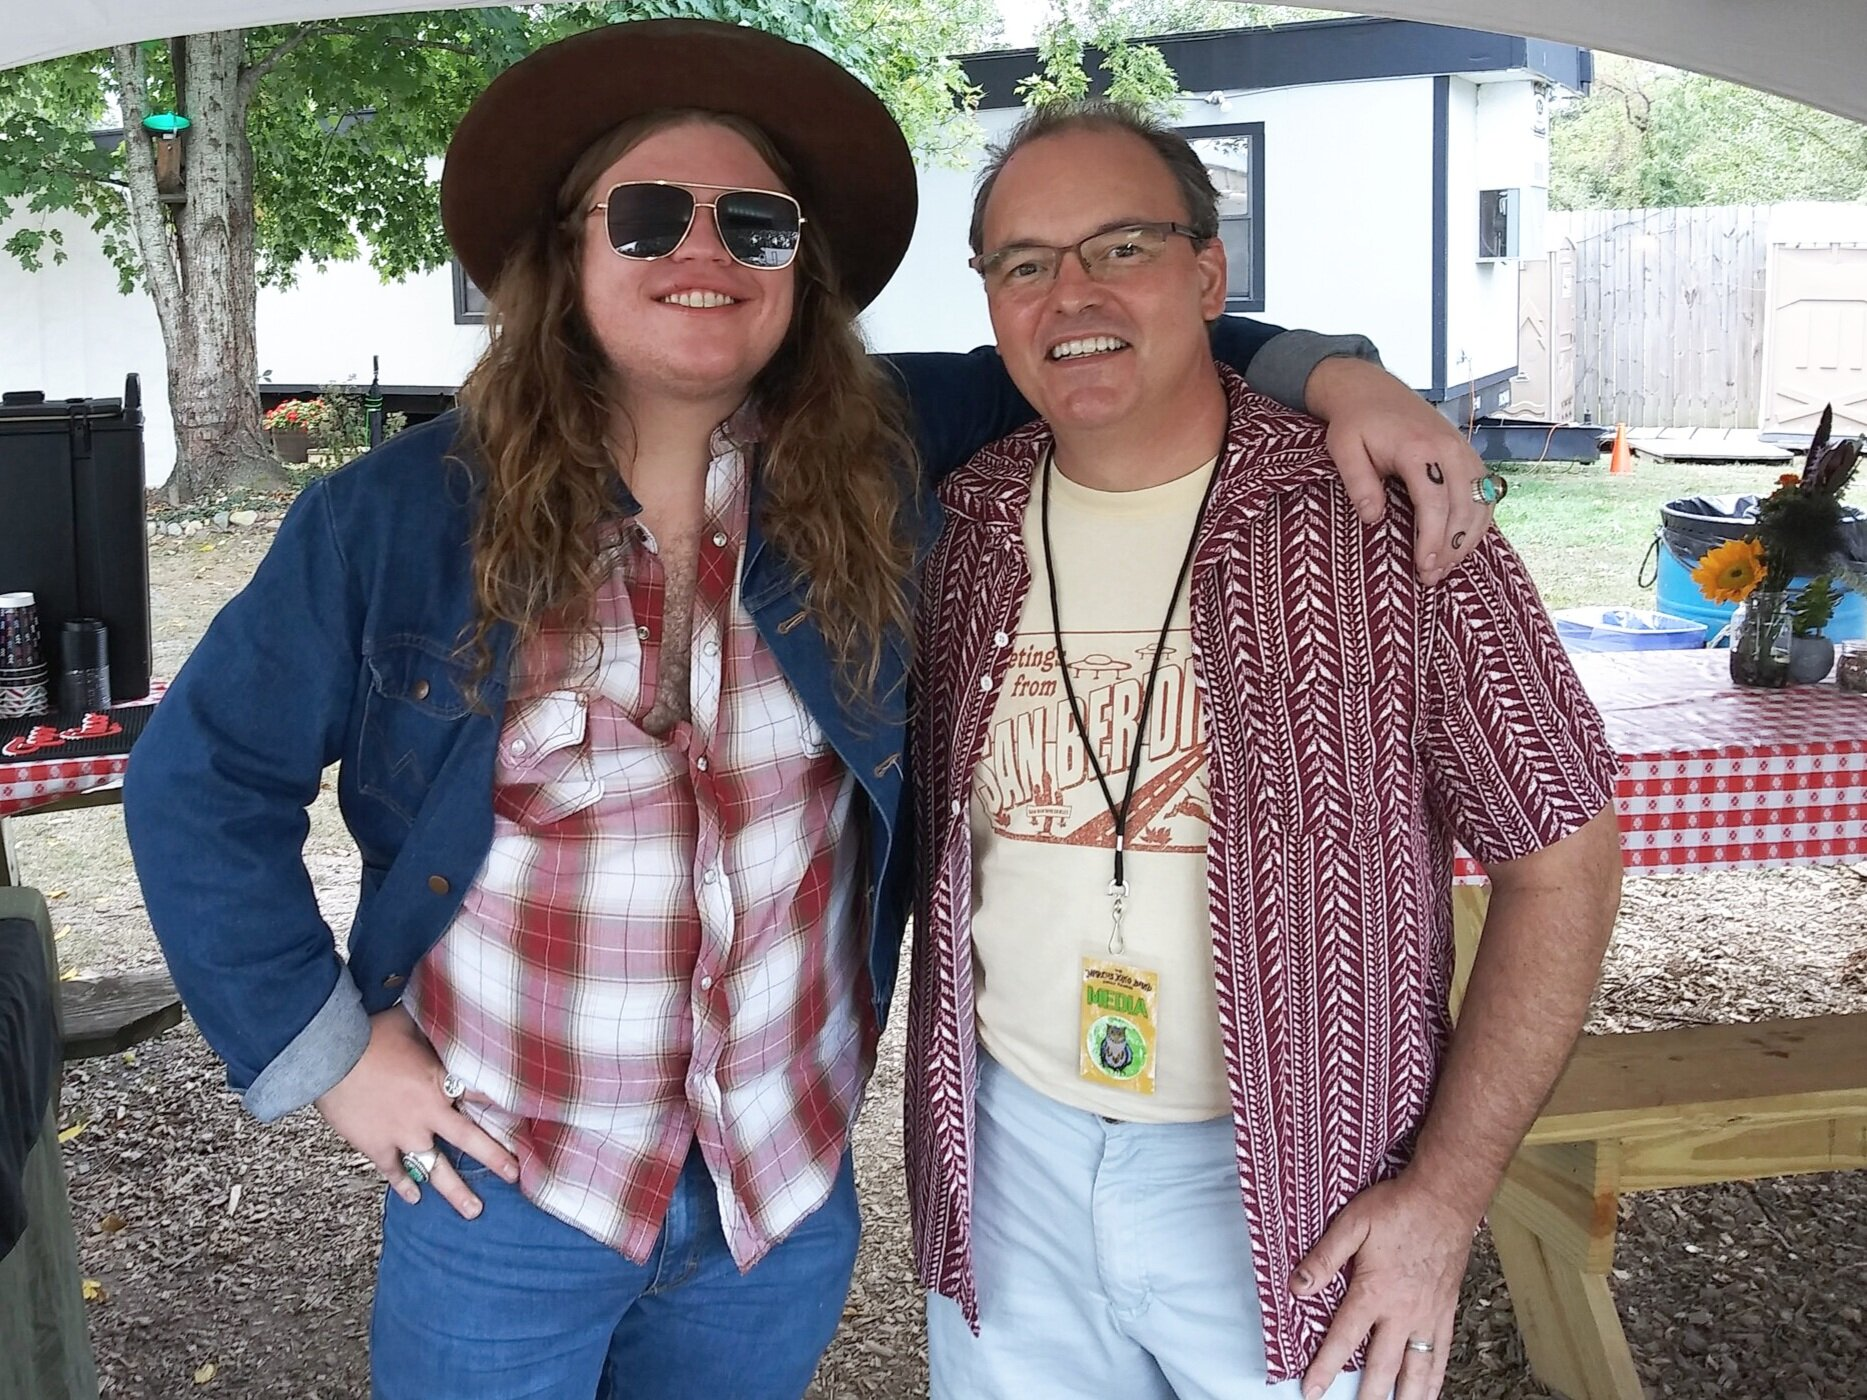 Marcus King with Joe Kendrick at the Marcus King Band Family Reunion in Black Mtn, NC 9-28-19